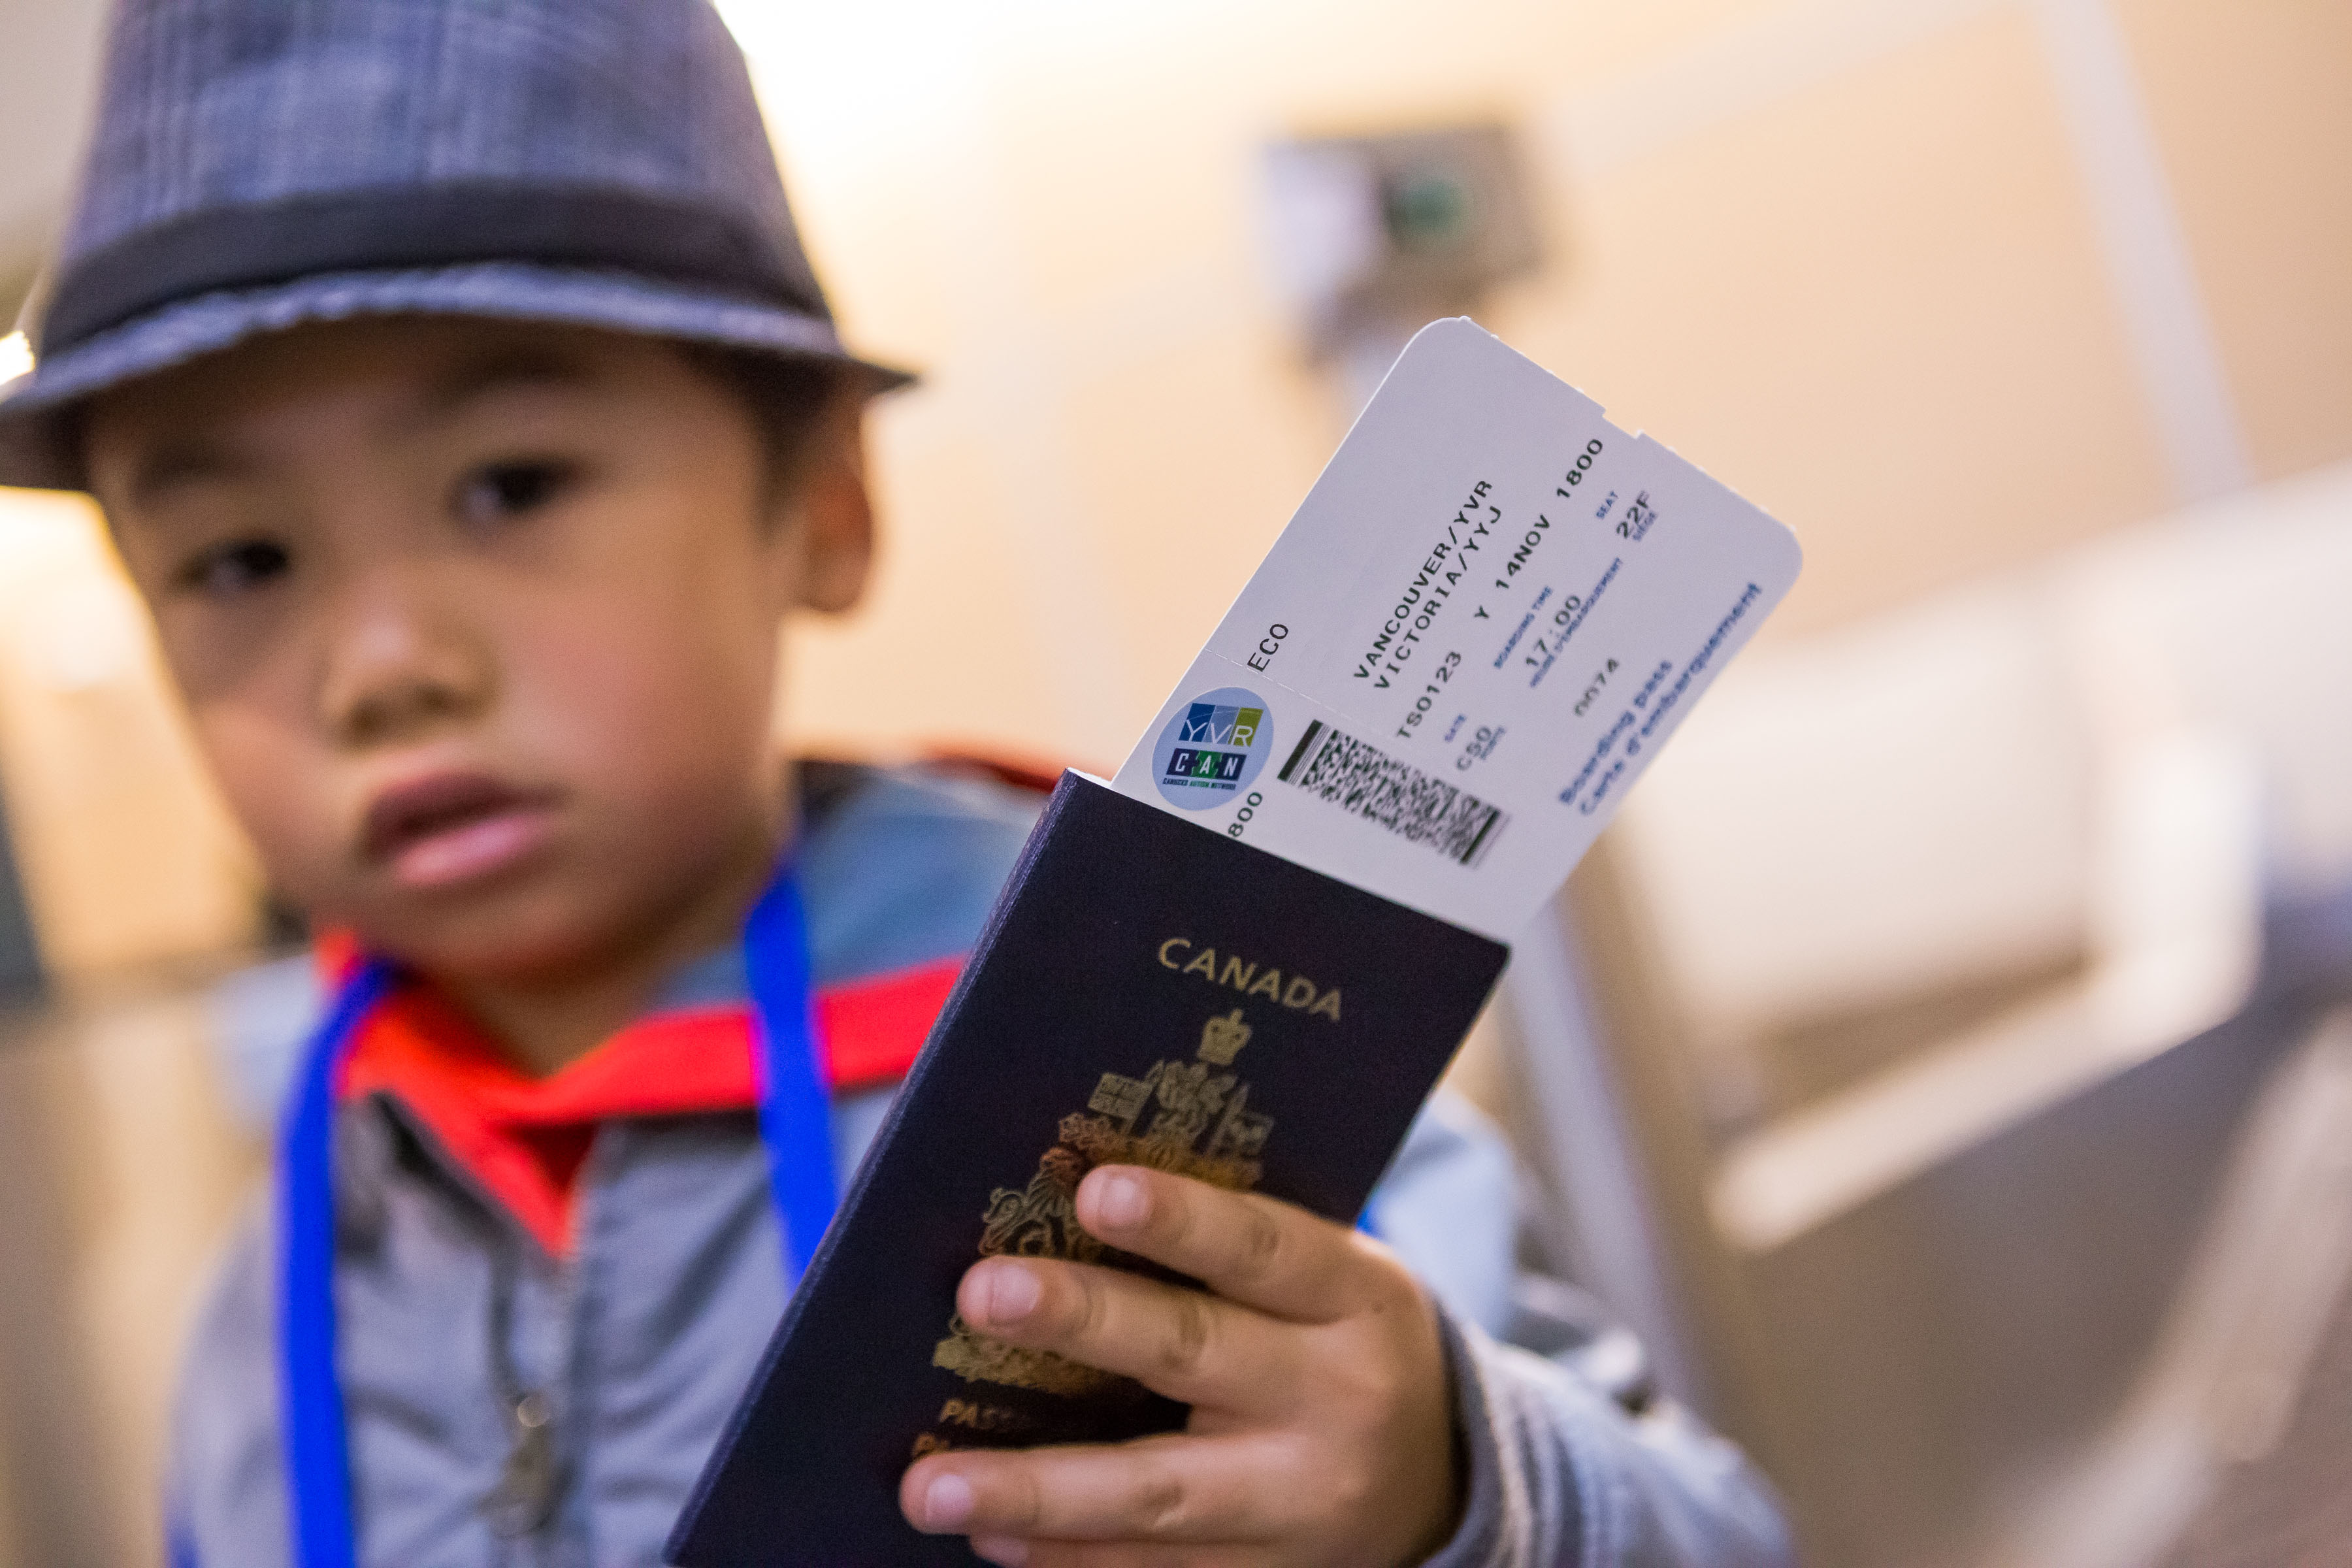 Little boy holding passport with boarding pass with an autism access sticker